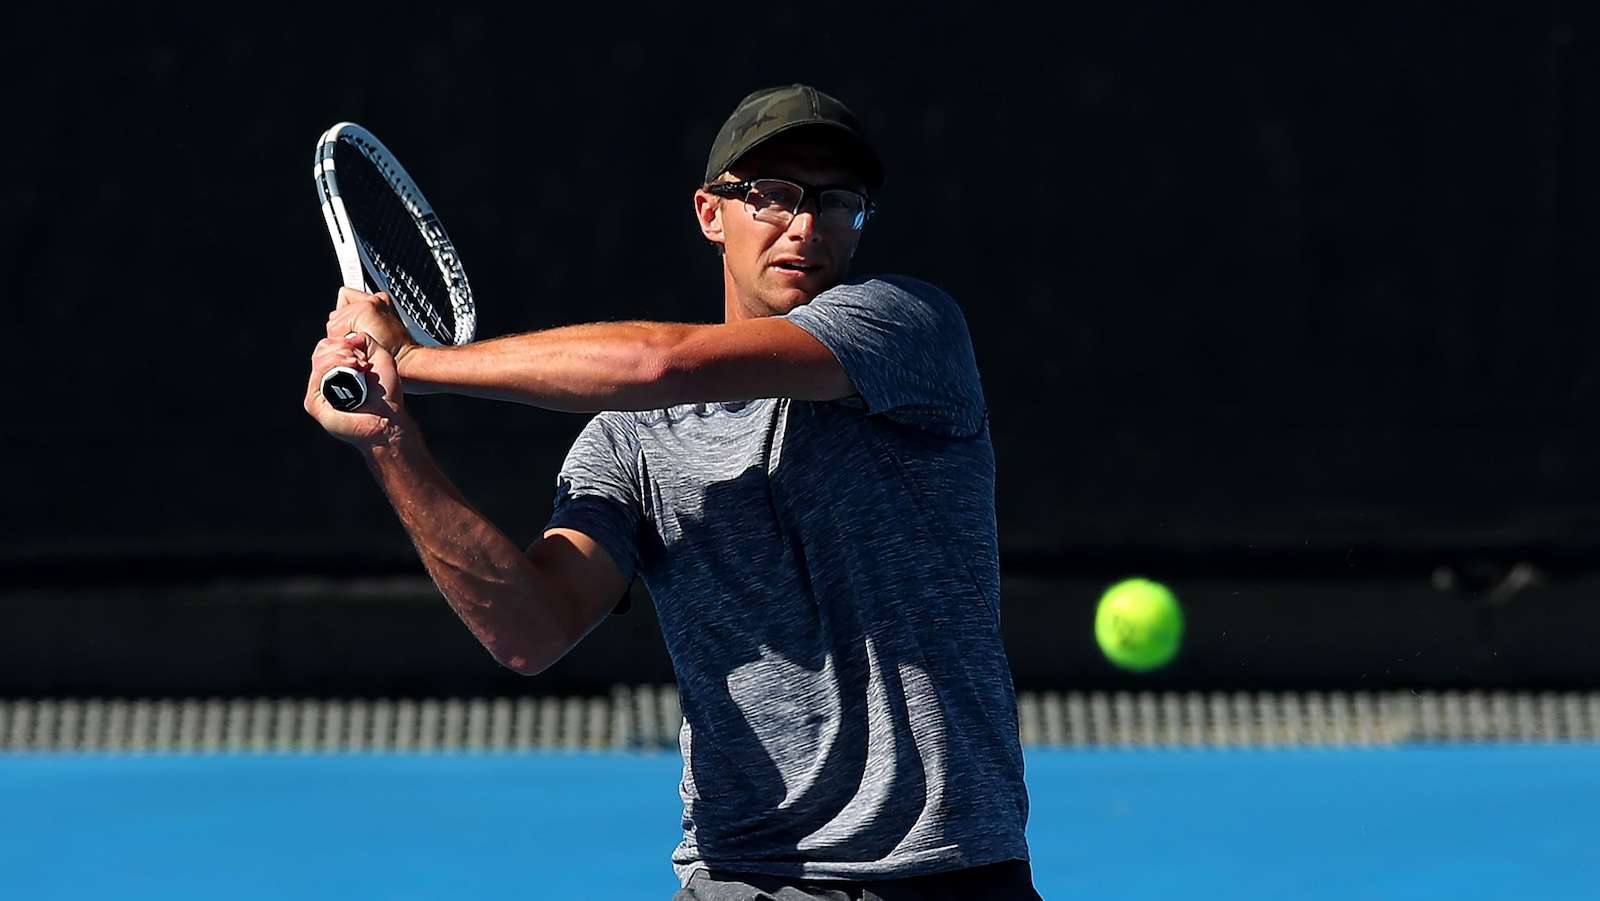 Le Canadien Peter Polansky renvoie la balle du revers à l'Australien Thanasi Kokkinakis en qualifications des Internationaux d'Australie.